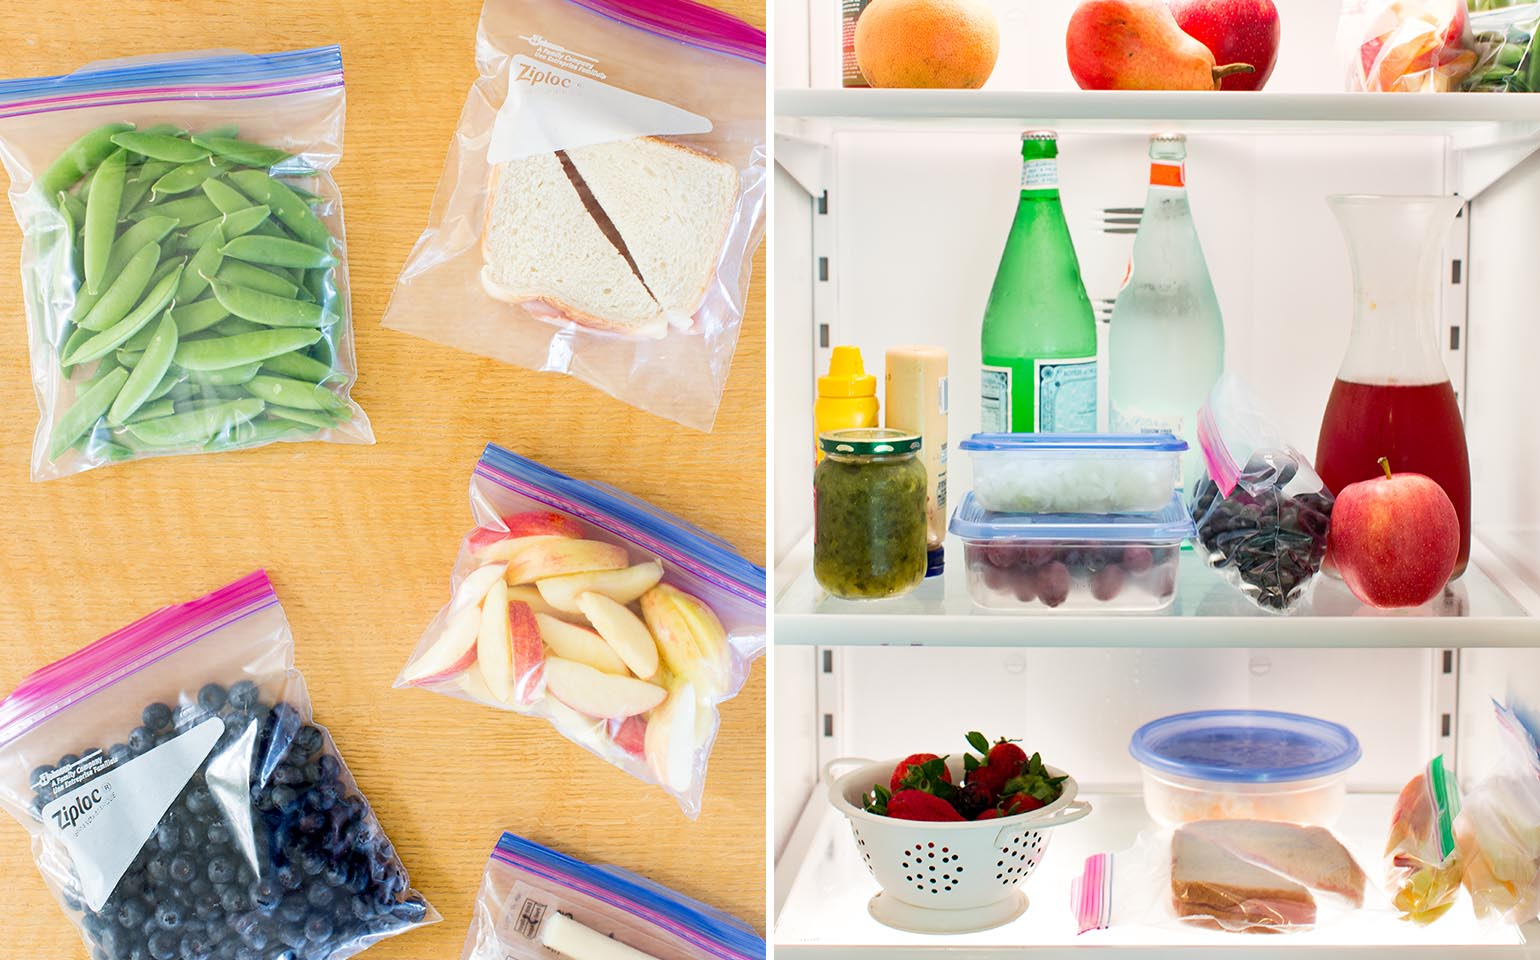 Dorm Room Survival Tips from Ziploc® brand